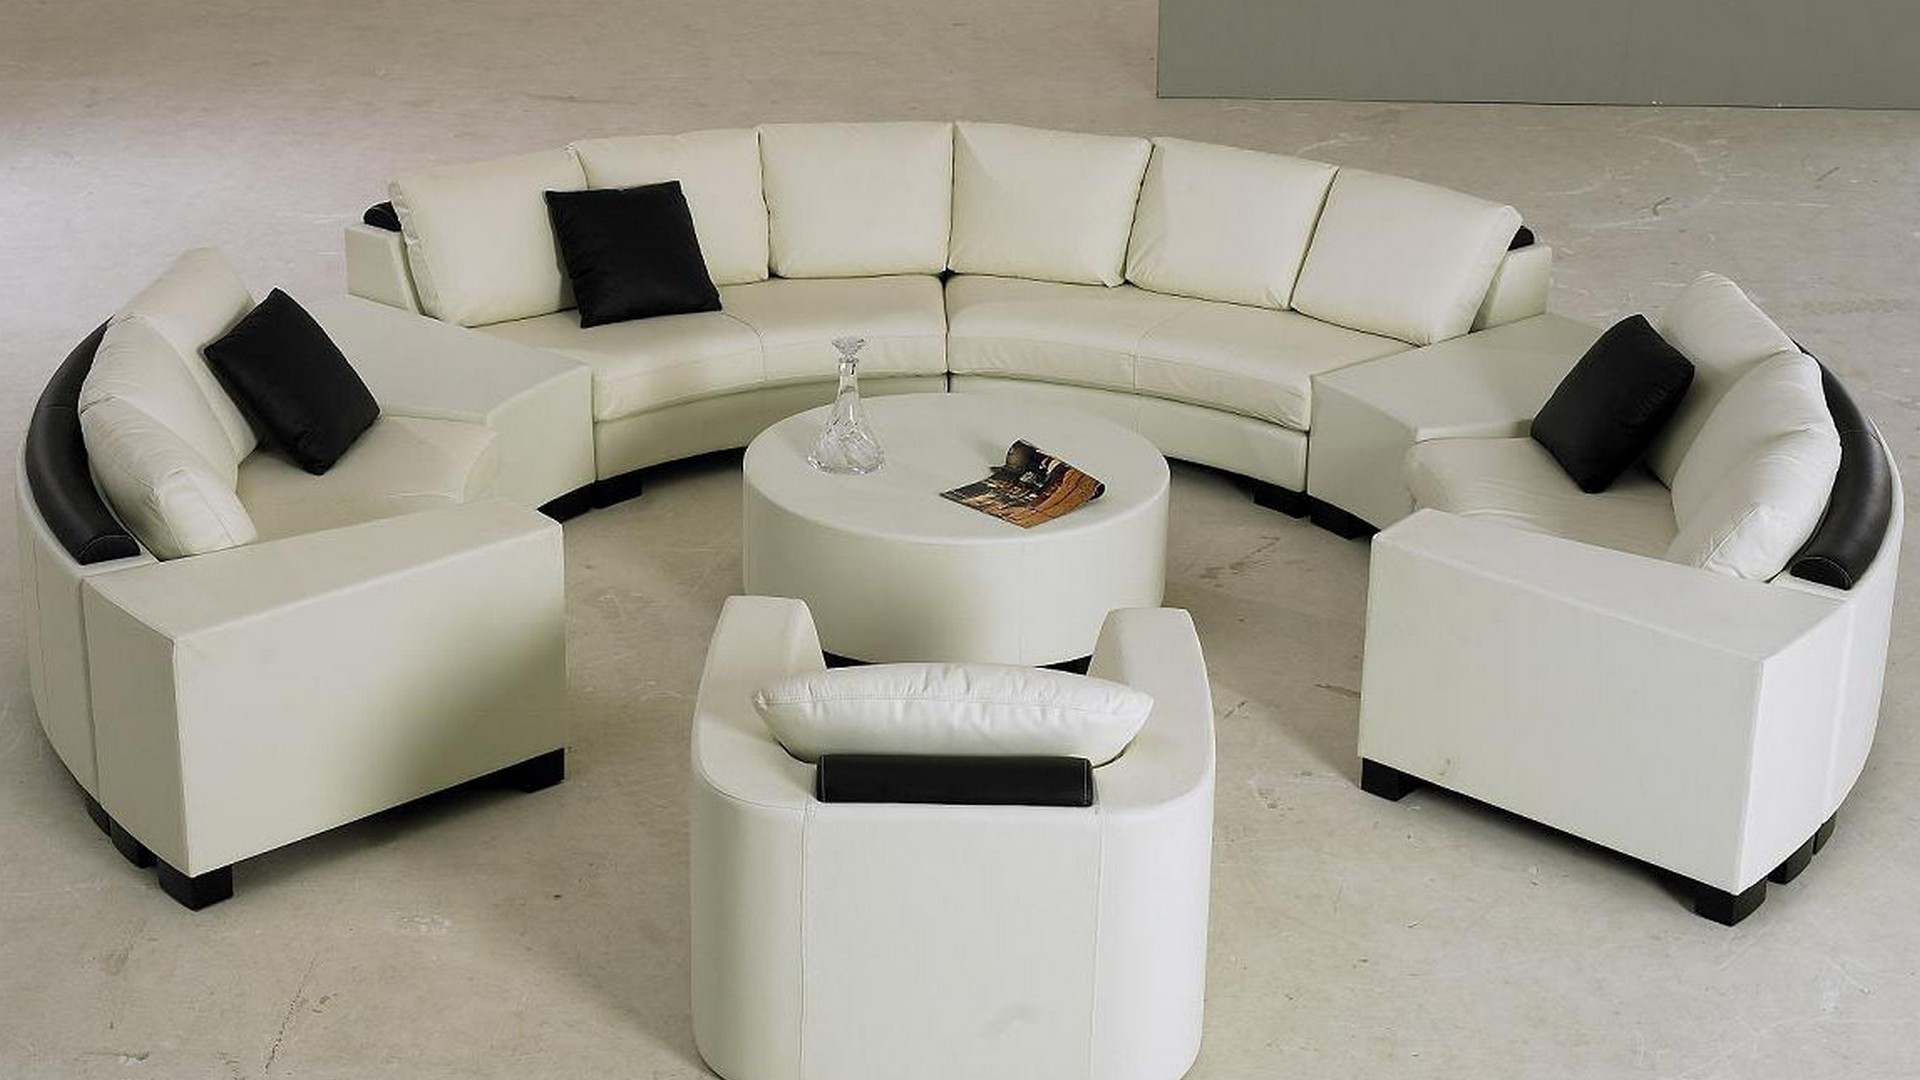 Engagng White Half Round Sofa With Black Pillows And Rond Table Within Well Known Round Sofas (View 4 of 20)